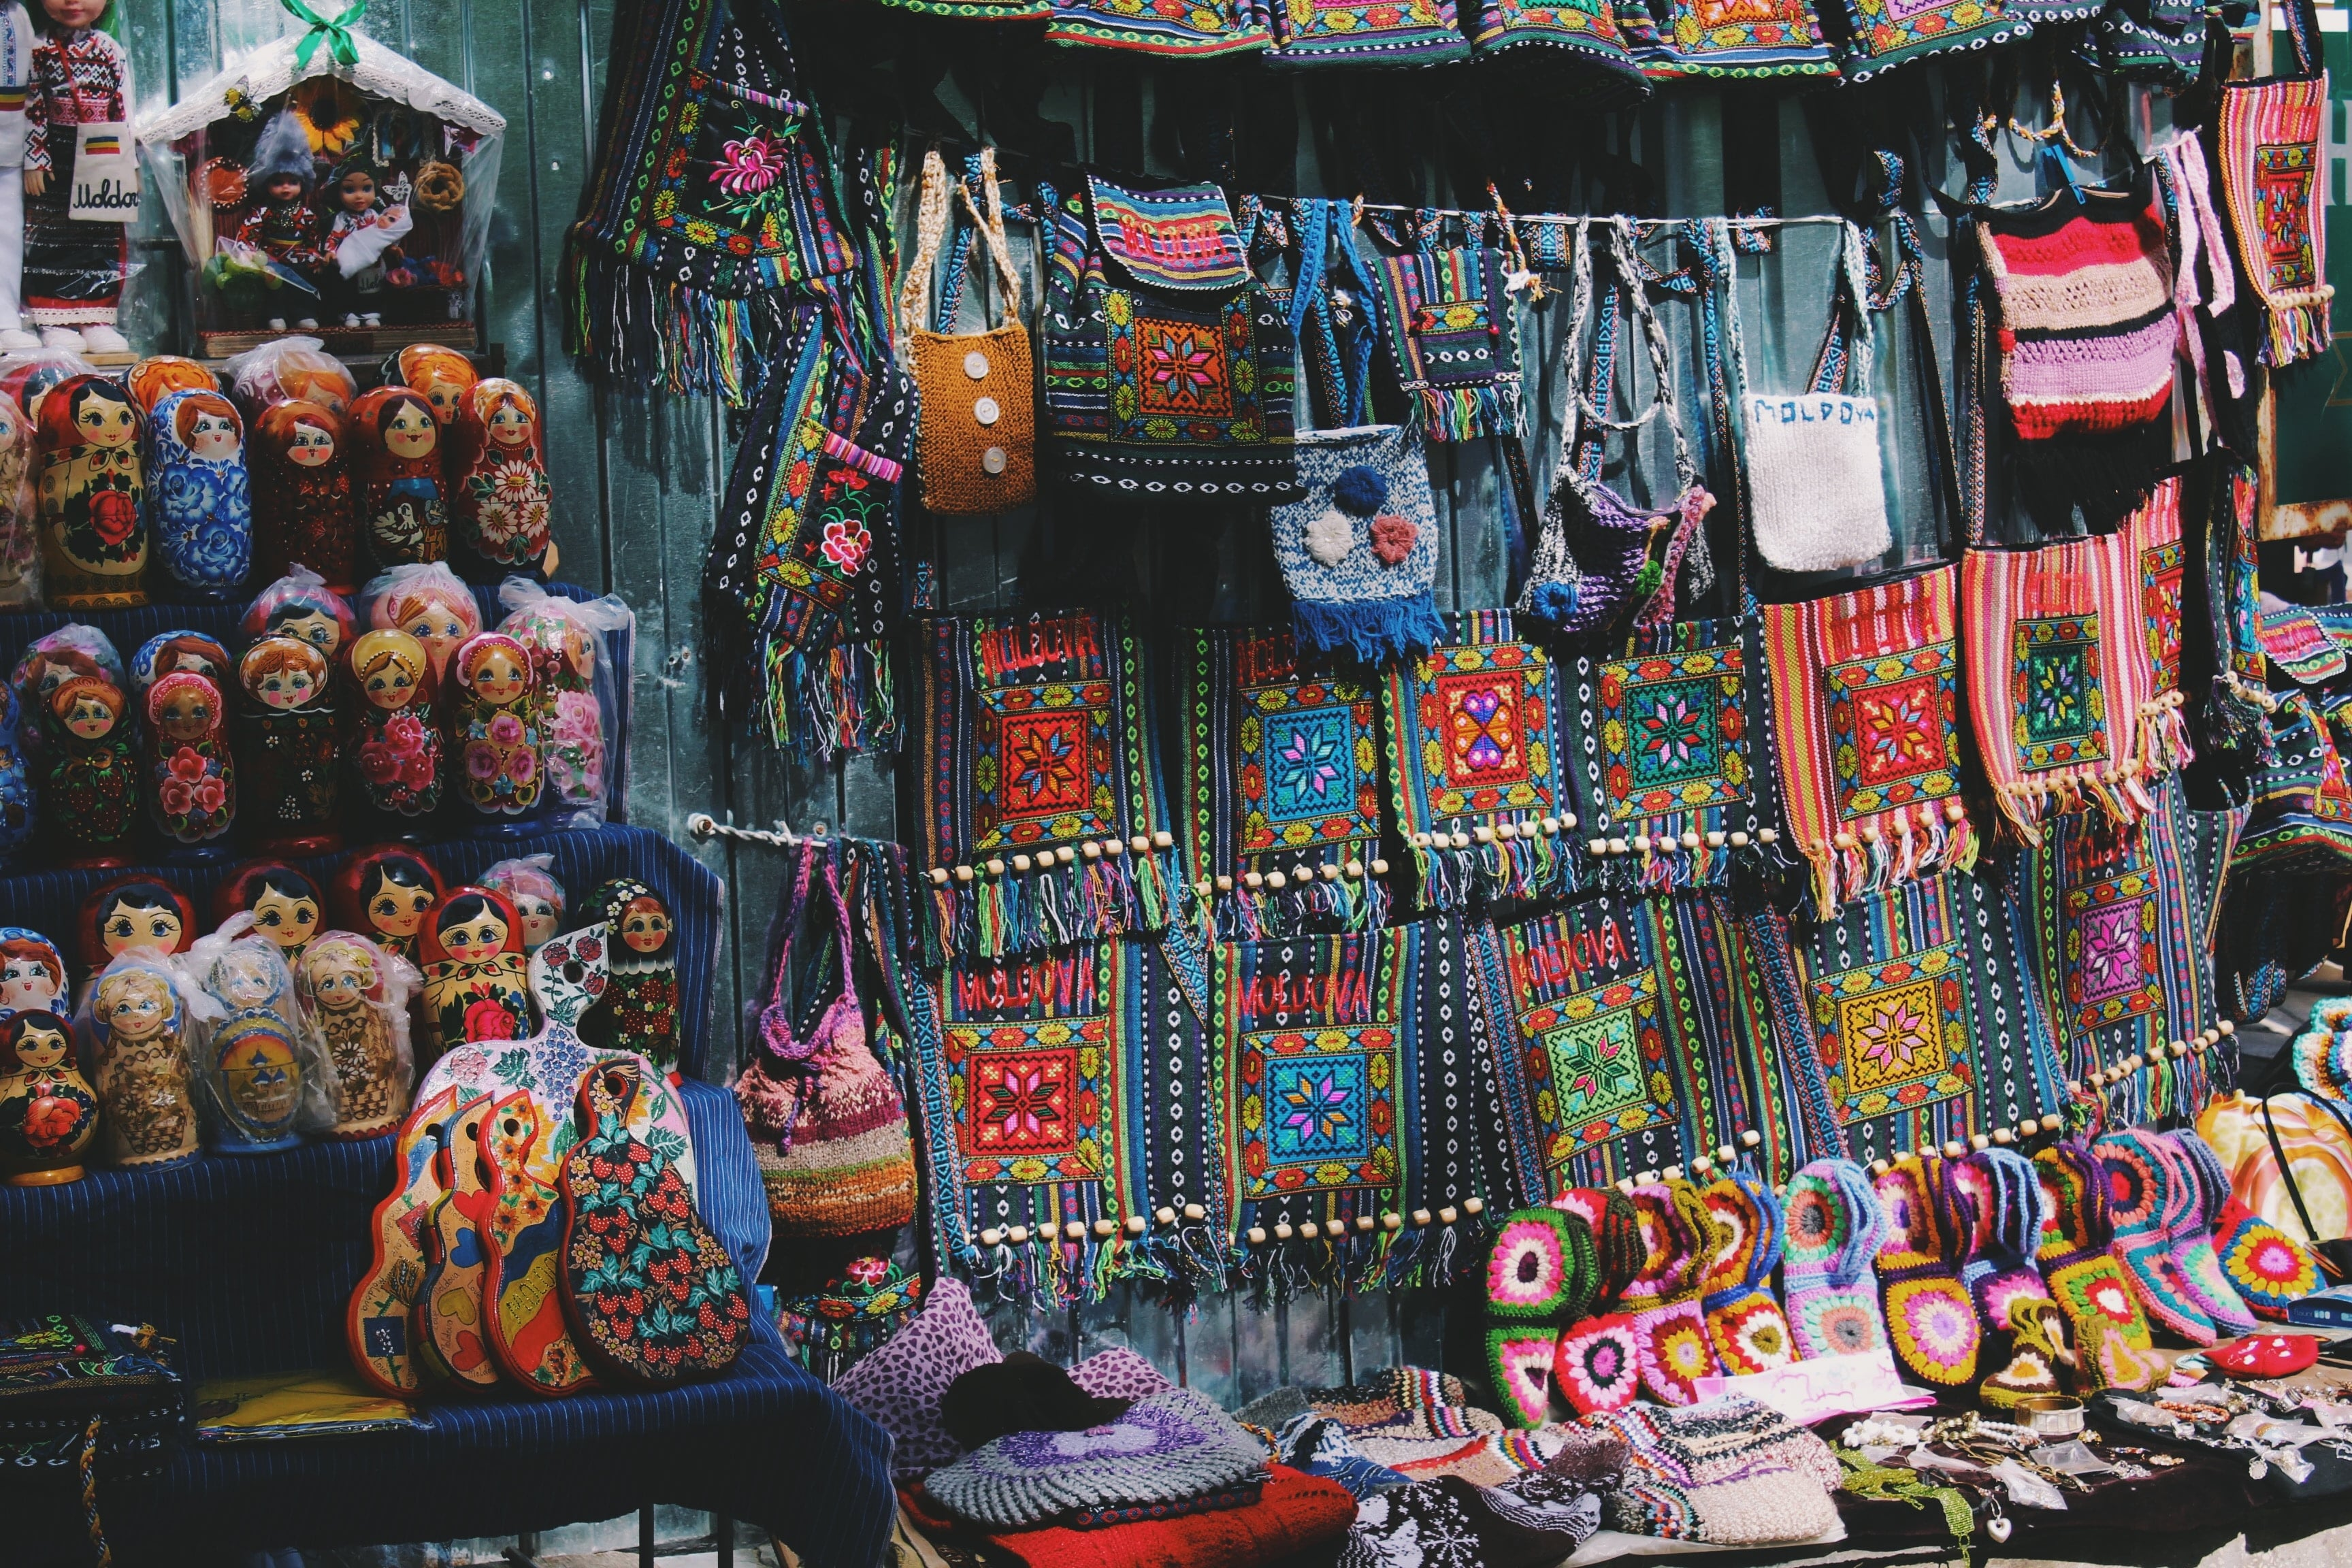 TOP 5 SPECIAL SOUVENIRS YOU SHOULD BUY IN VIETNAM   12